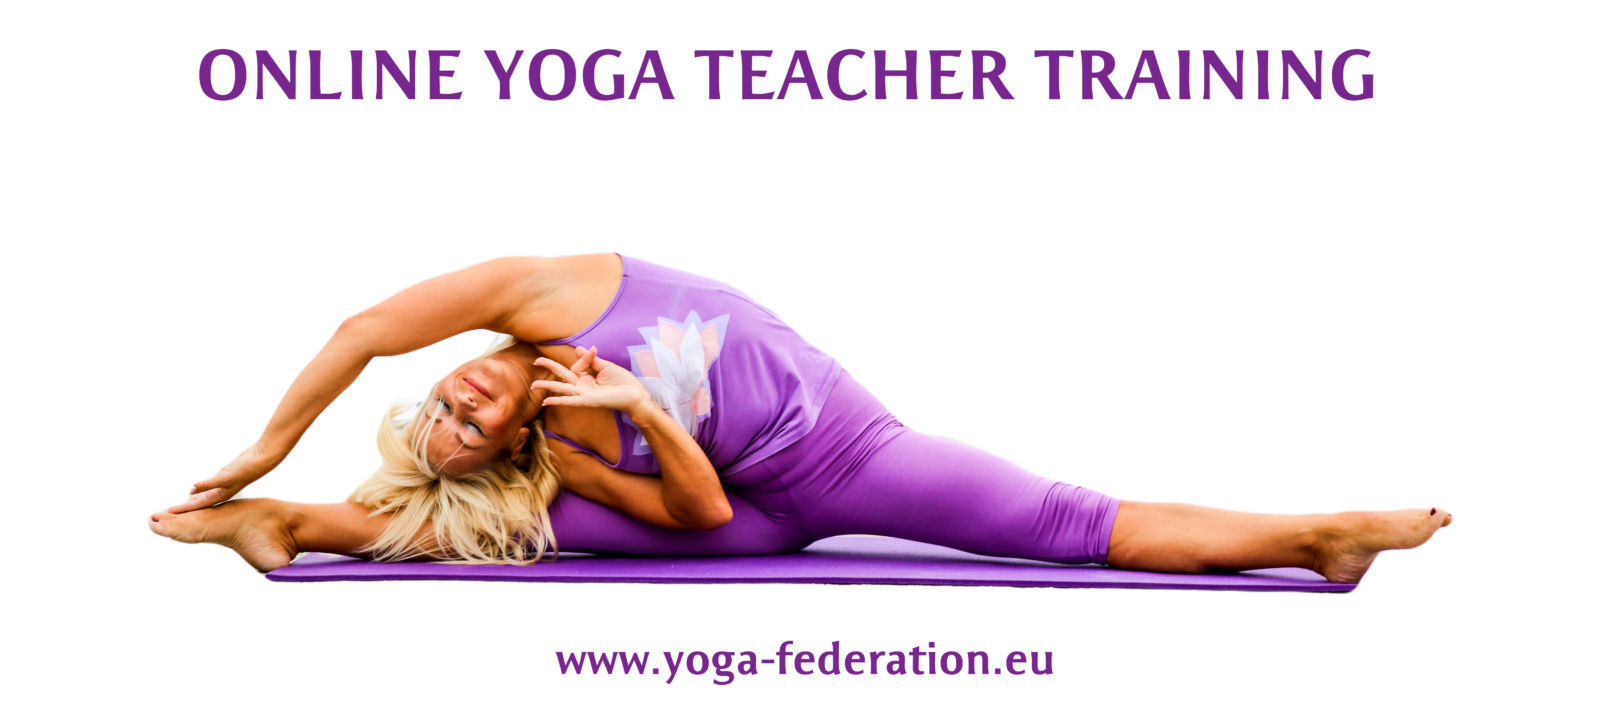 Online Yoga Teacher Training Yoga Federation Of Europe